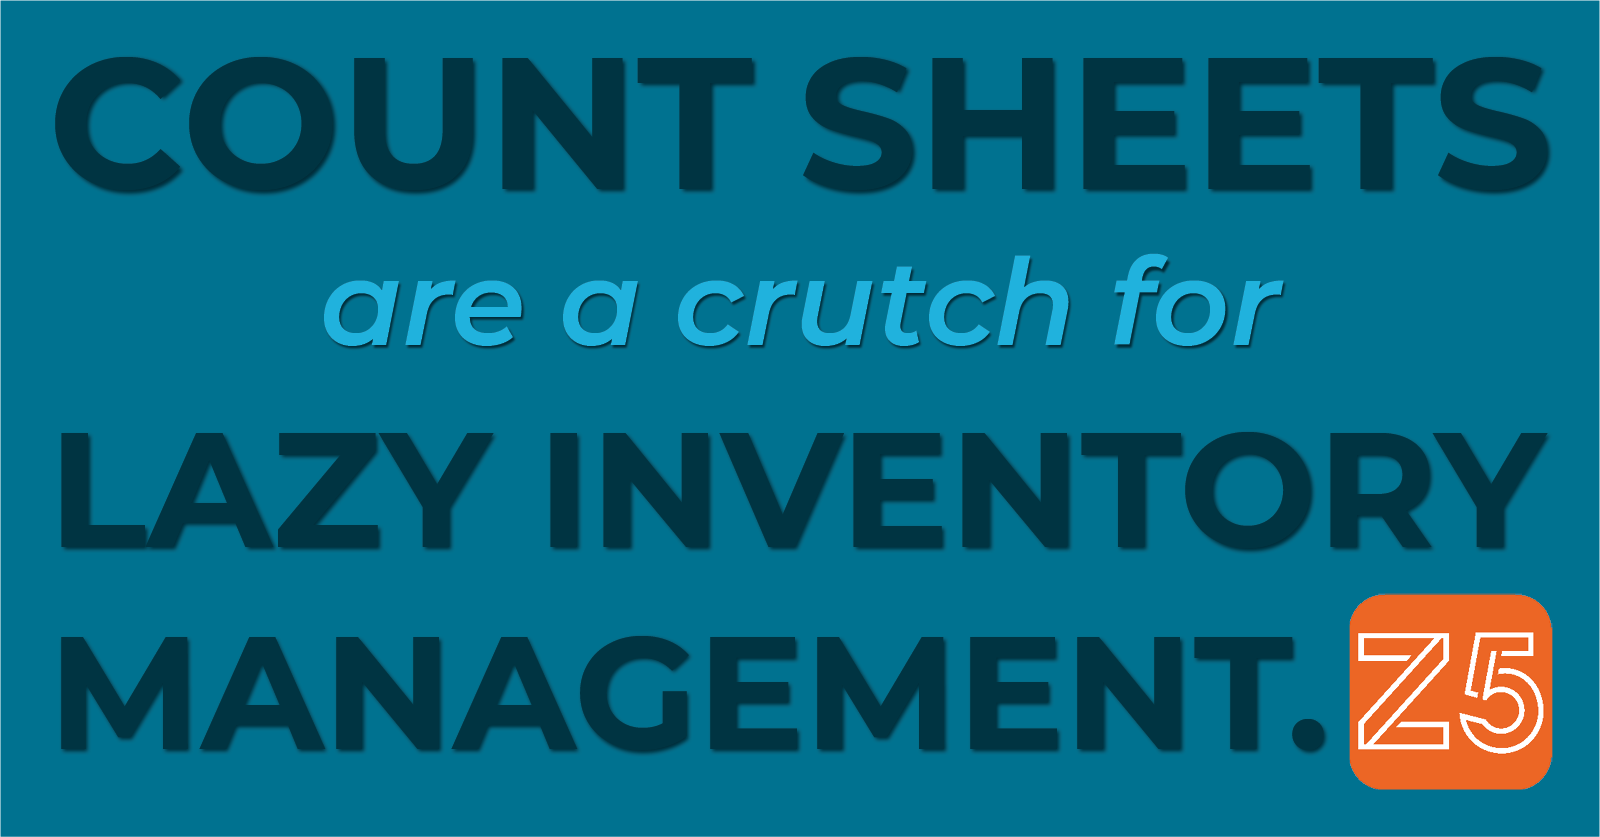 Count sheets are a crutch for lazy inventory management.